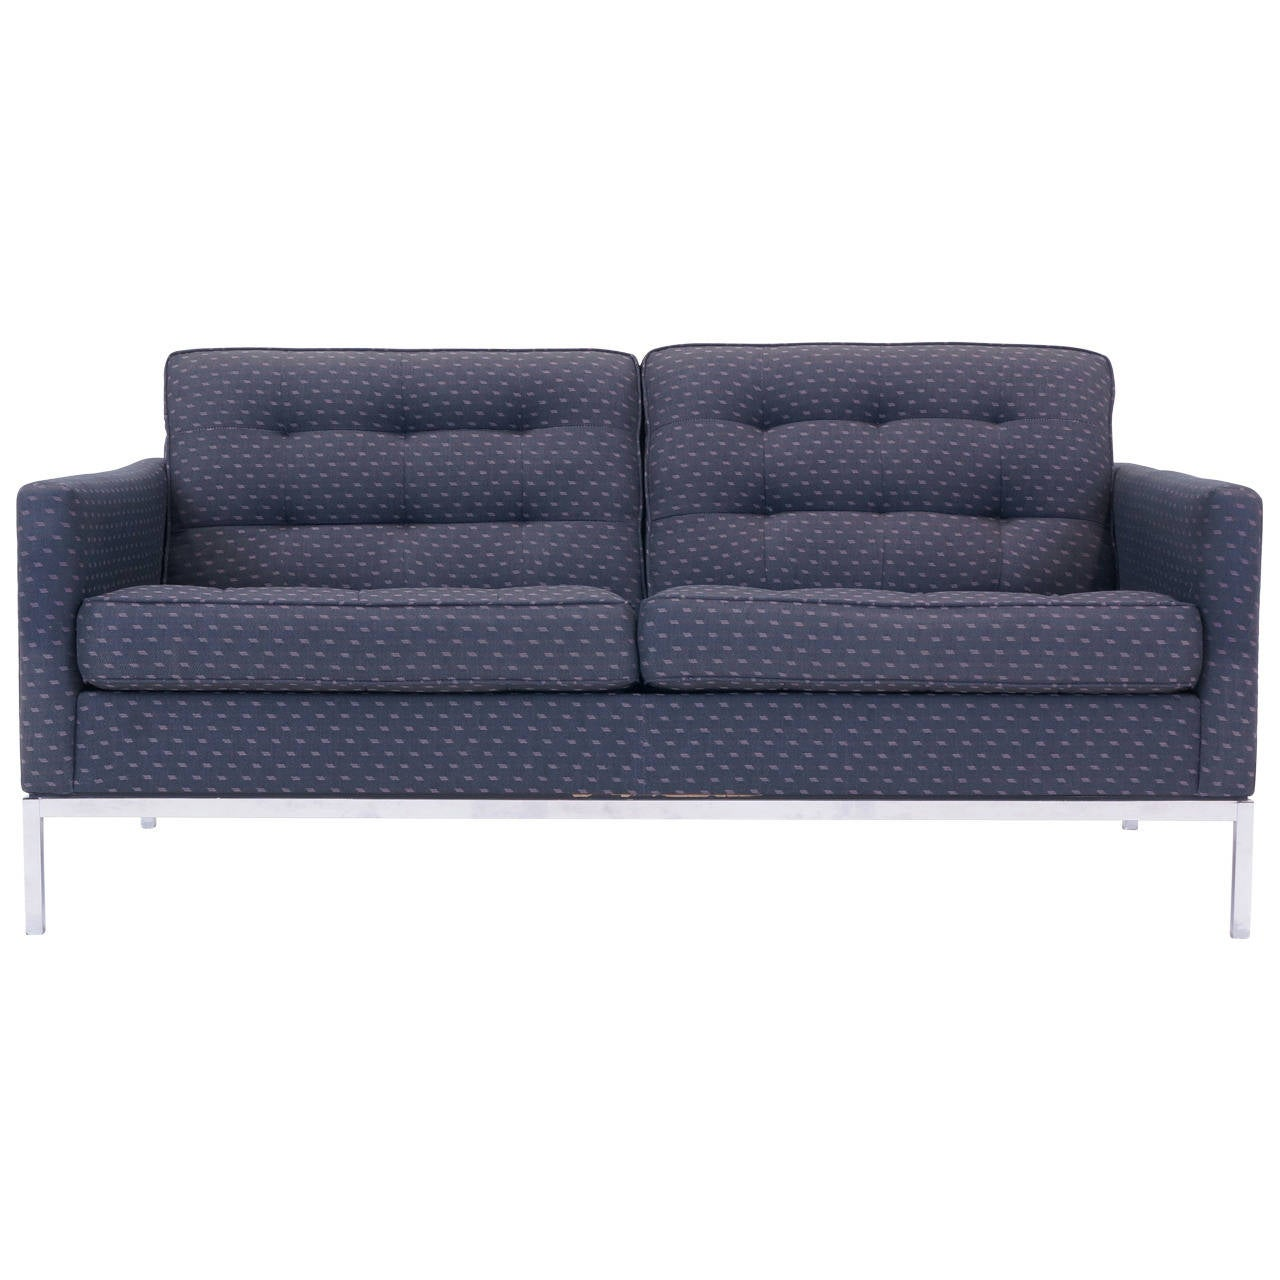 Florence Knoll Settee Or Loveseat For Sale At 1stdibs